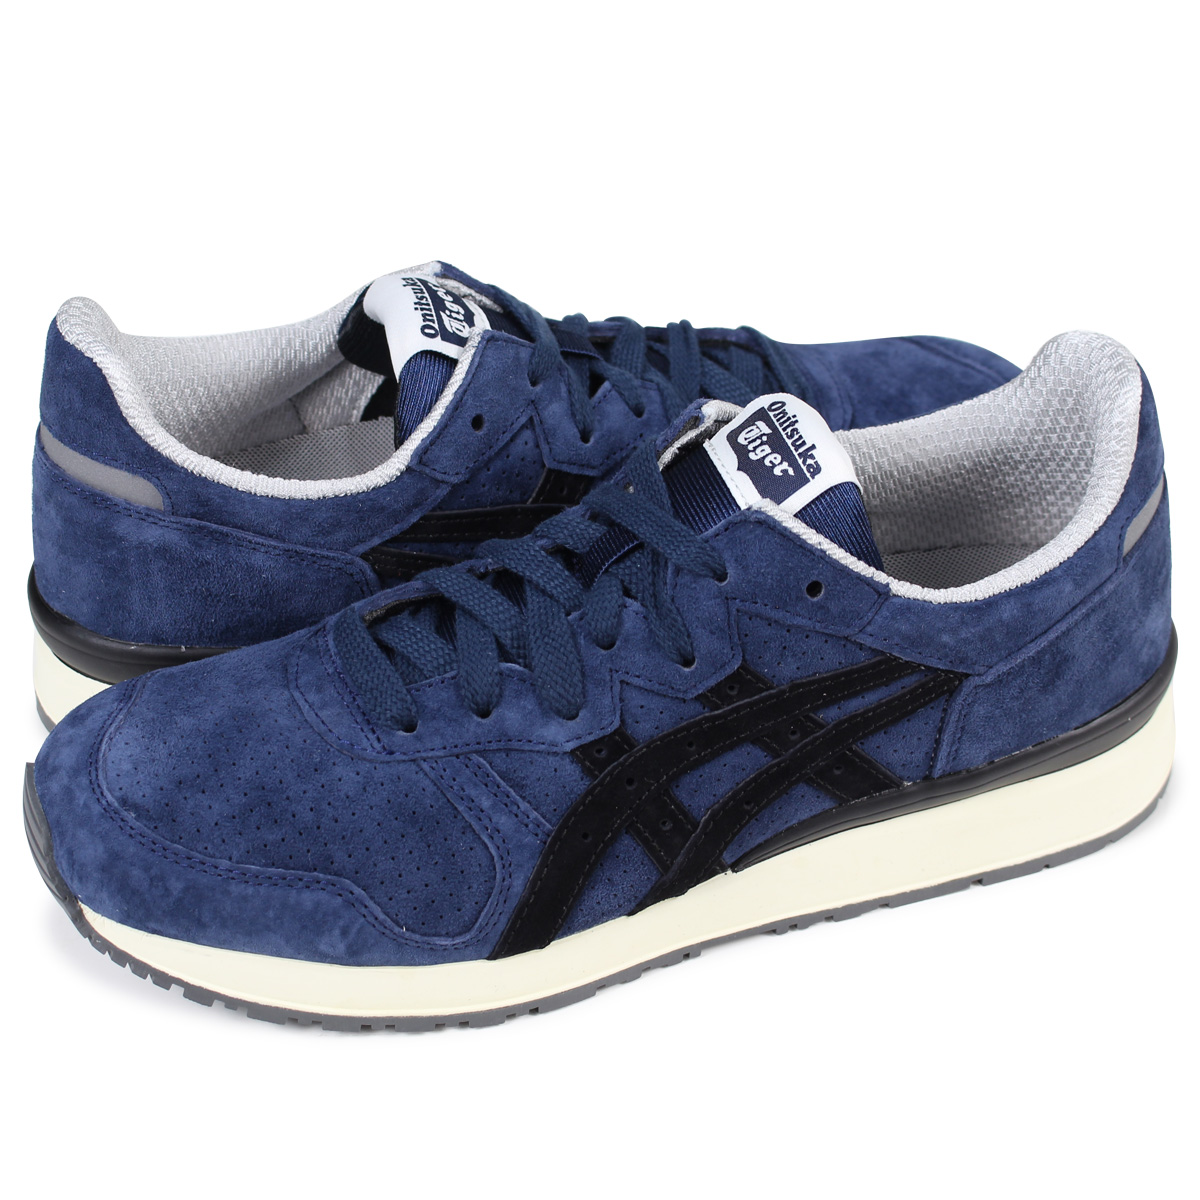 100% authentic b13b2 c6108 Onitsuka Tiger TIGER ALLY Onitsuka tiger tiger Alley men gap Dis sneakers  D701L-5890 TH701L-5890 navy [load planned Shinnyu load in reservation ...